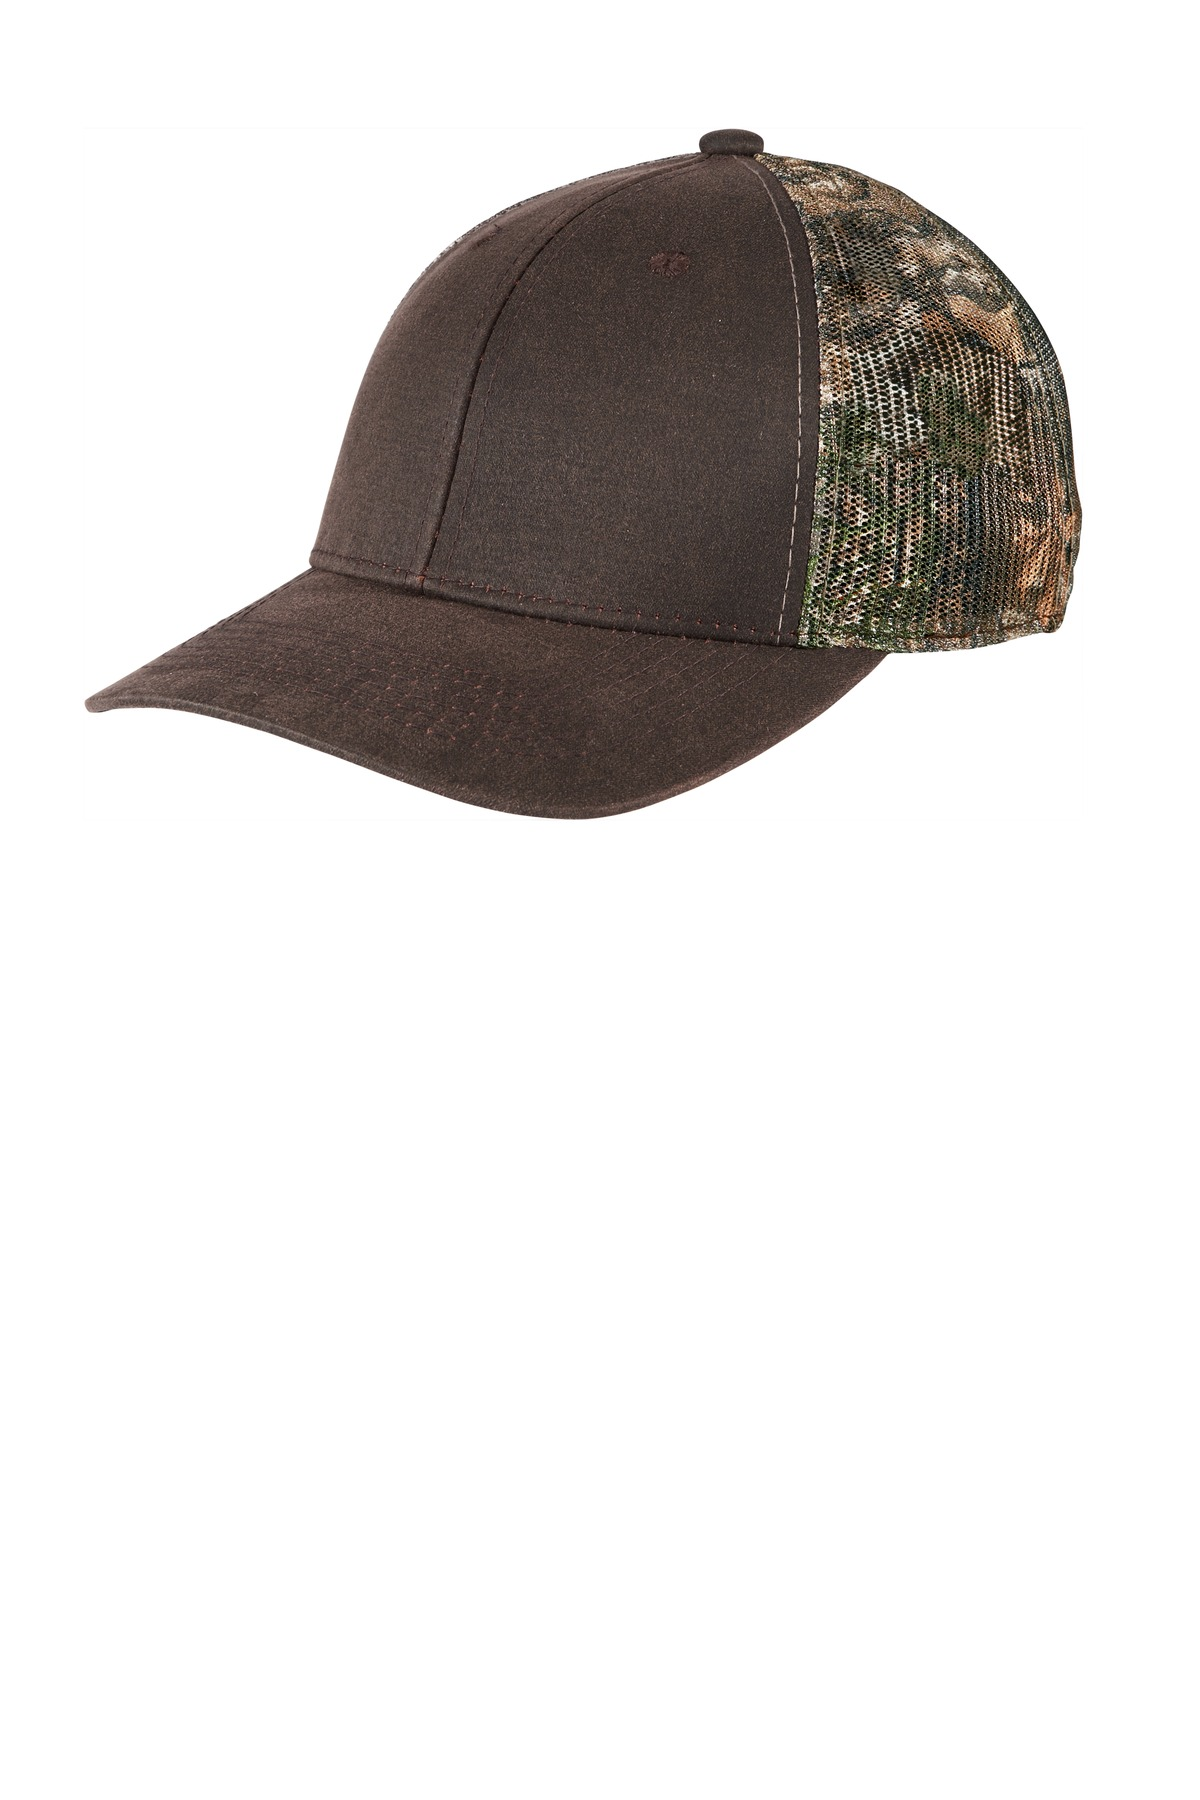 Port Authority  ®  Pigment Print Camouflage Mesh Back Cap C891 - Realtree Edge/ Brown